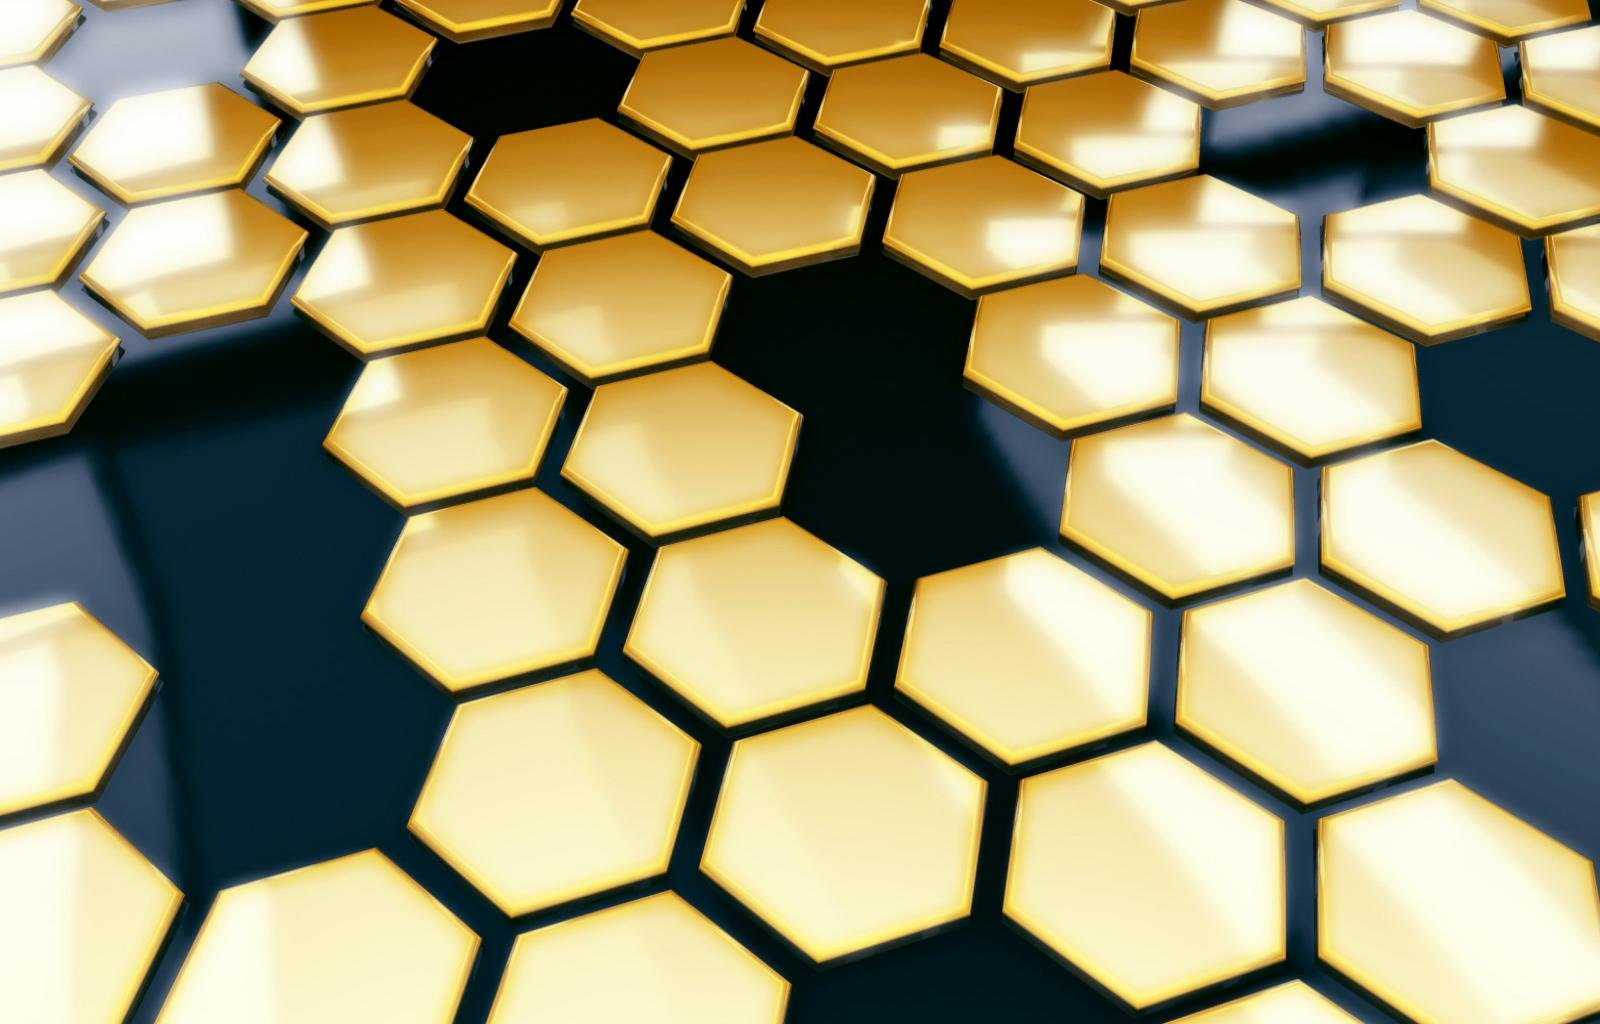 Awesome Honeycomb free wallpaper ID:166069 for hd 1600x1024 desktop